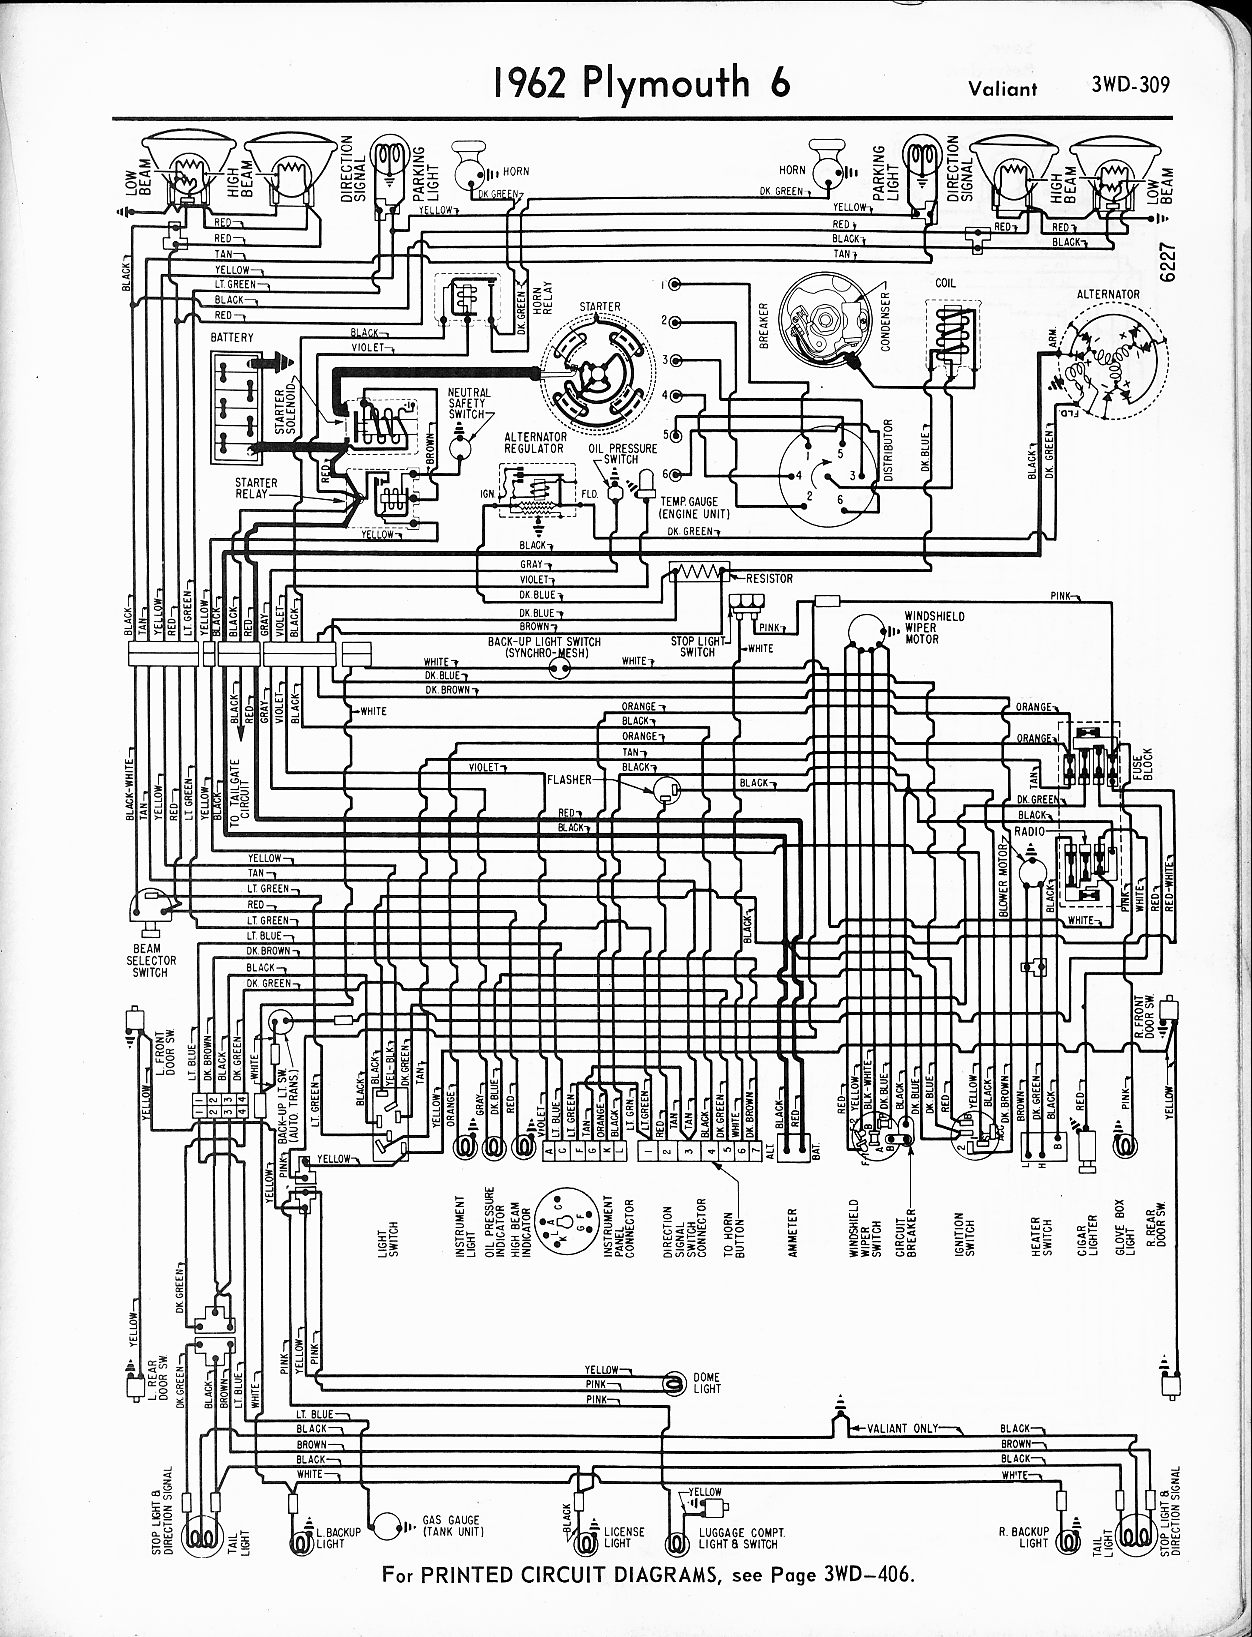 1973 Plymouth Barracuda Wiring Diagram Download Diagrams Roadrunner 71 Cuda Get Free Image About 1972 Road Runner